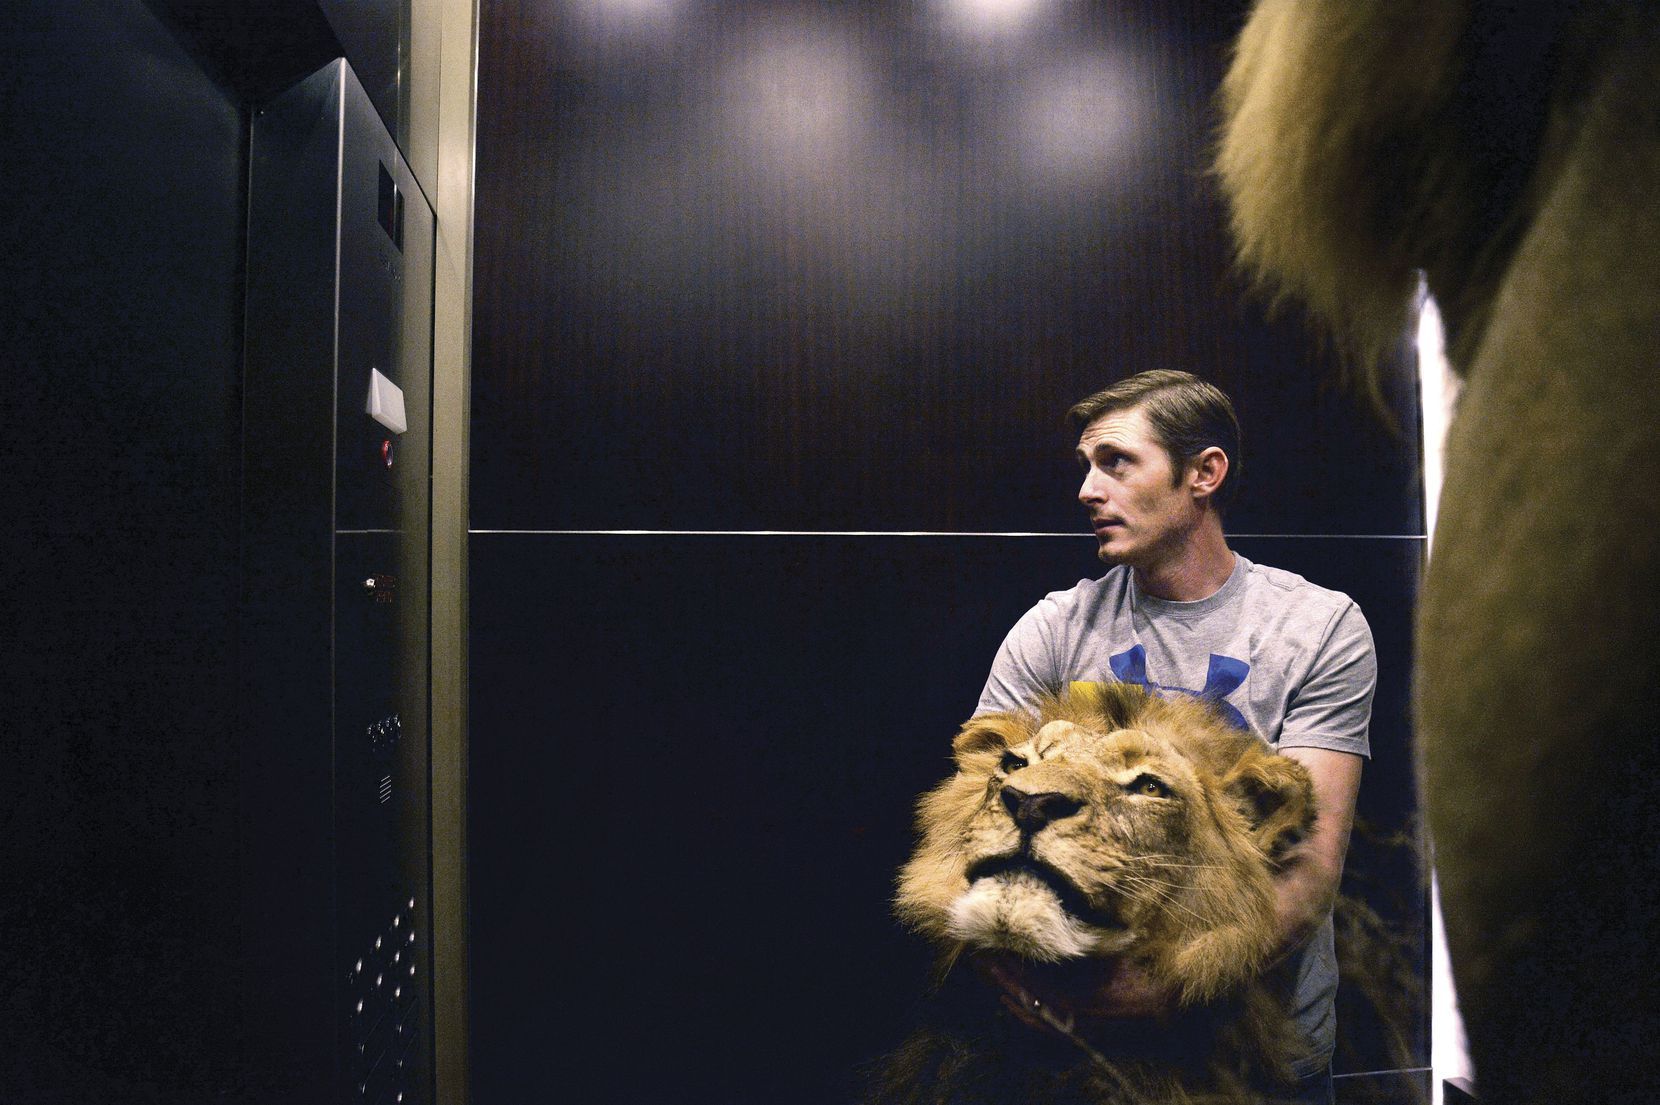 Conroe Taxidermy employee Brandon Casteel held a lion'€™s head in an elevator while he helped set up for a Dallas Safari Club show at the Kay Bailey Hutchison Convention Center on Jan. 6 in Dallas.